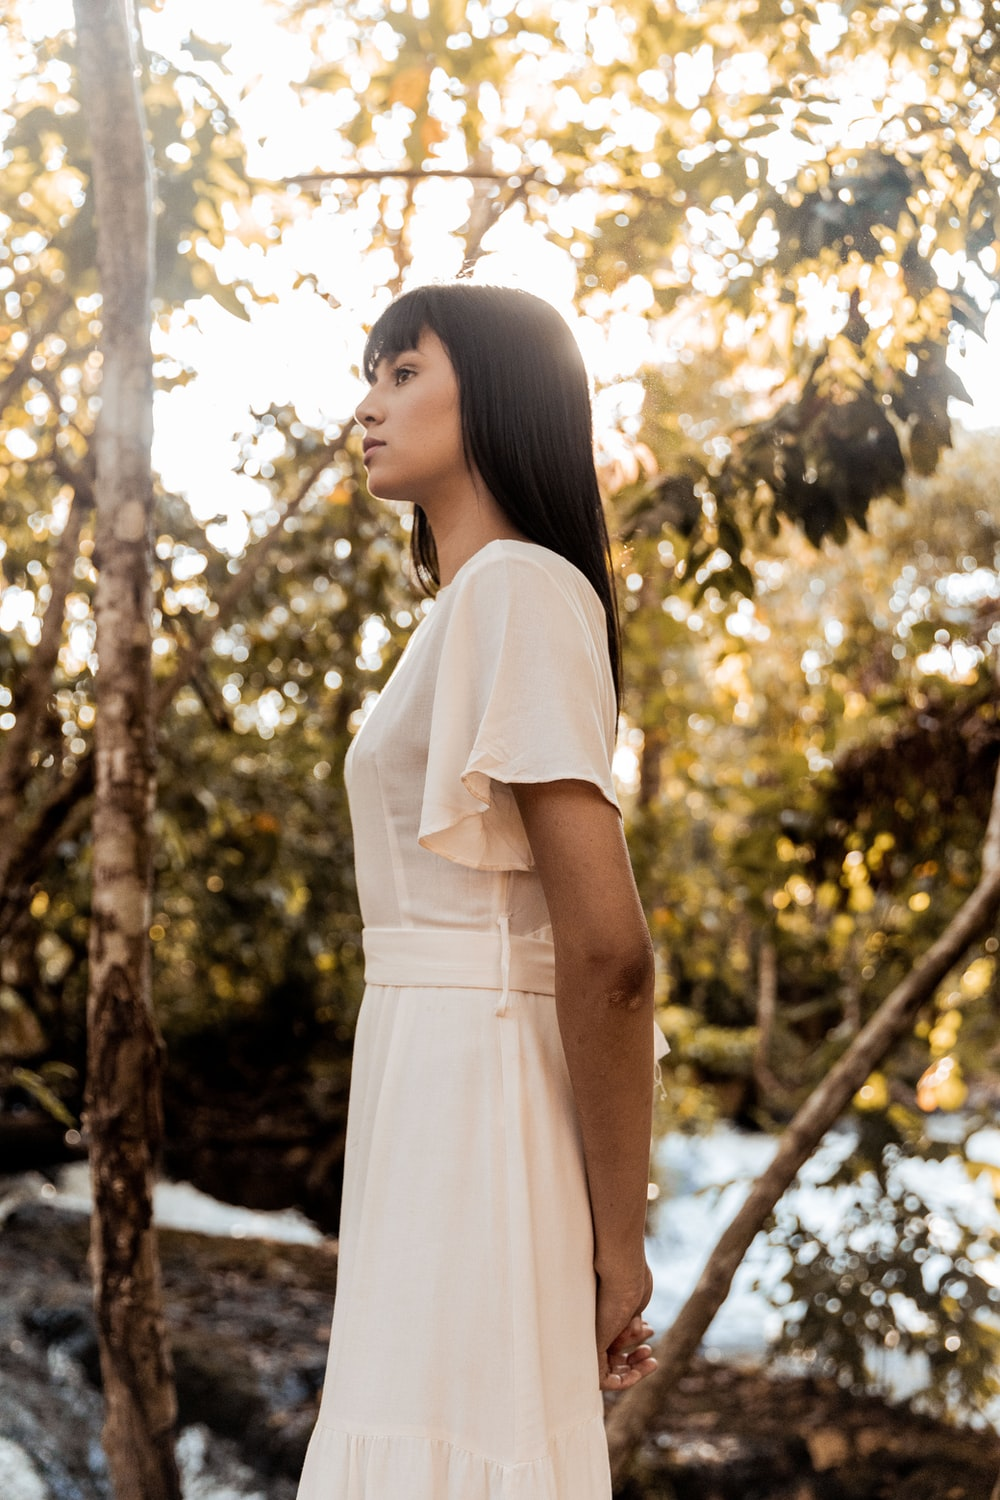 woman in white dress standing near trees during daytime